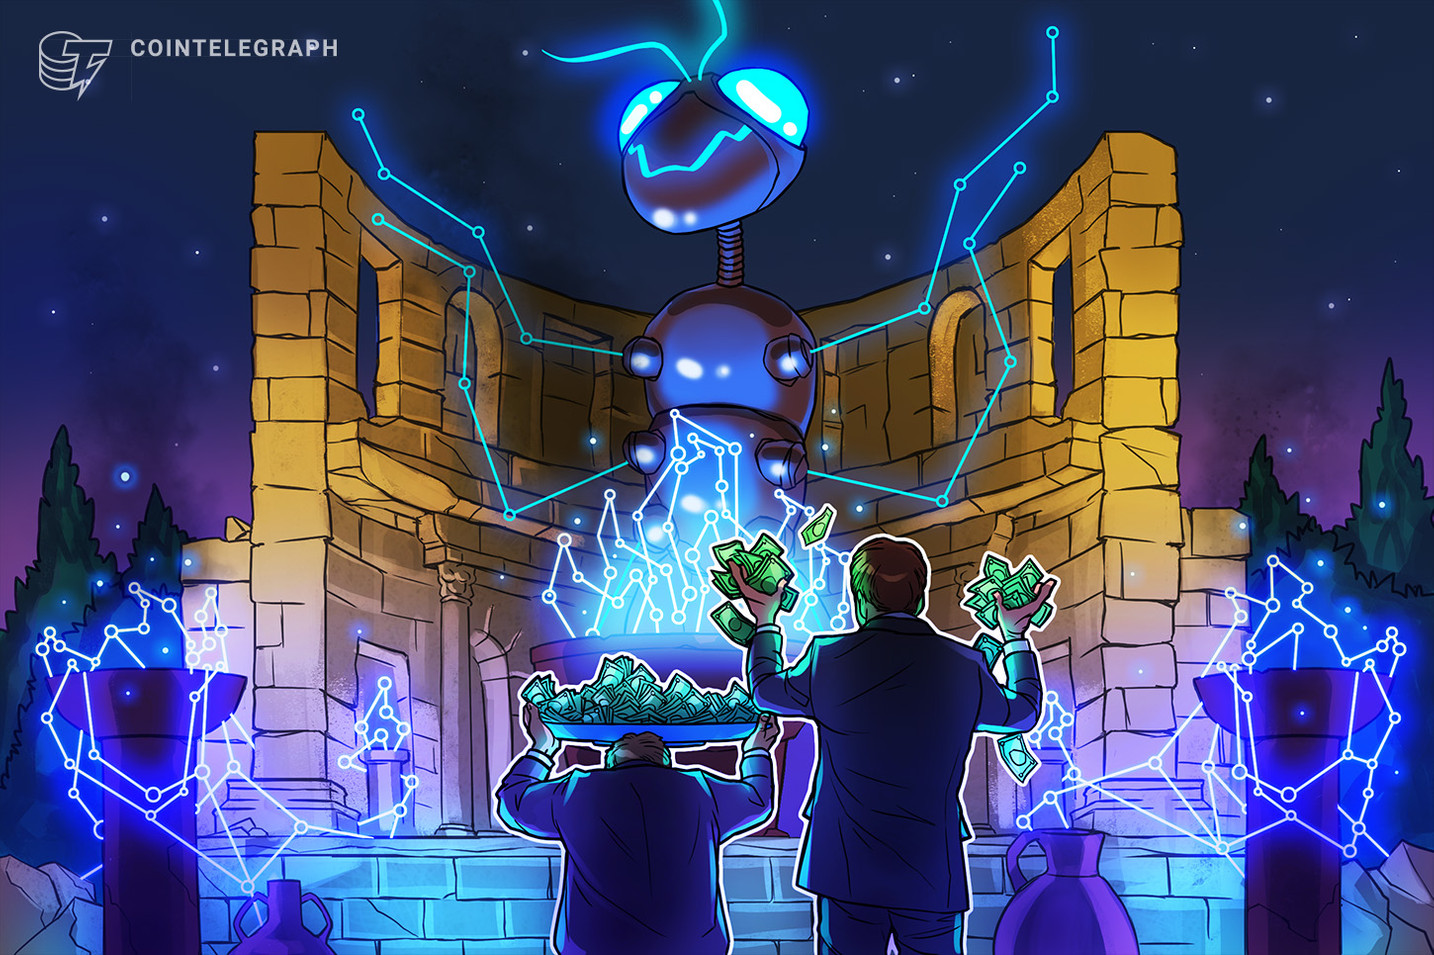 Reddit Co-Founder's Firm Leads $5M Funding Round for Blockchain Game Studio